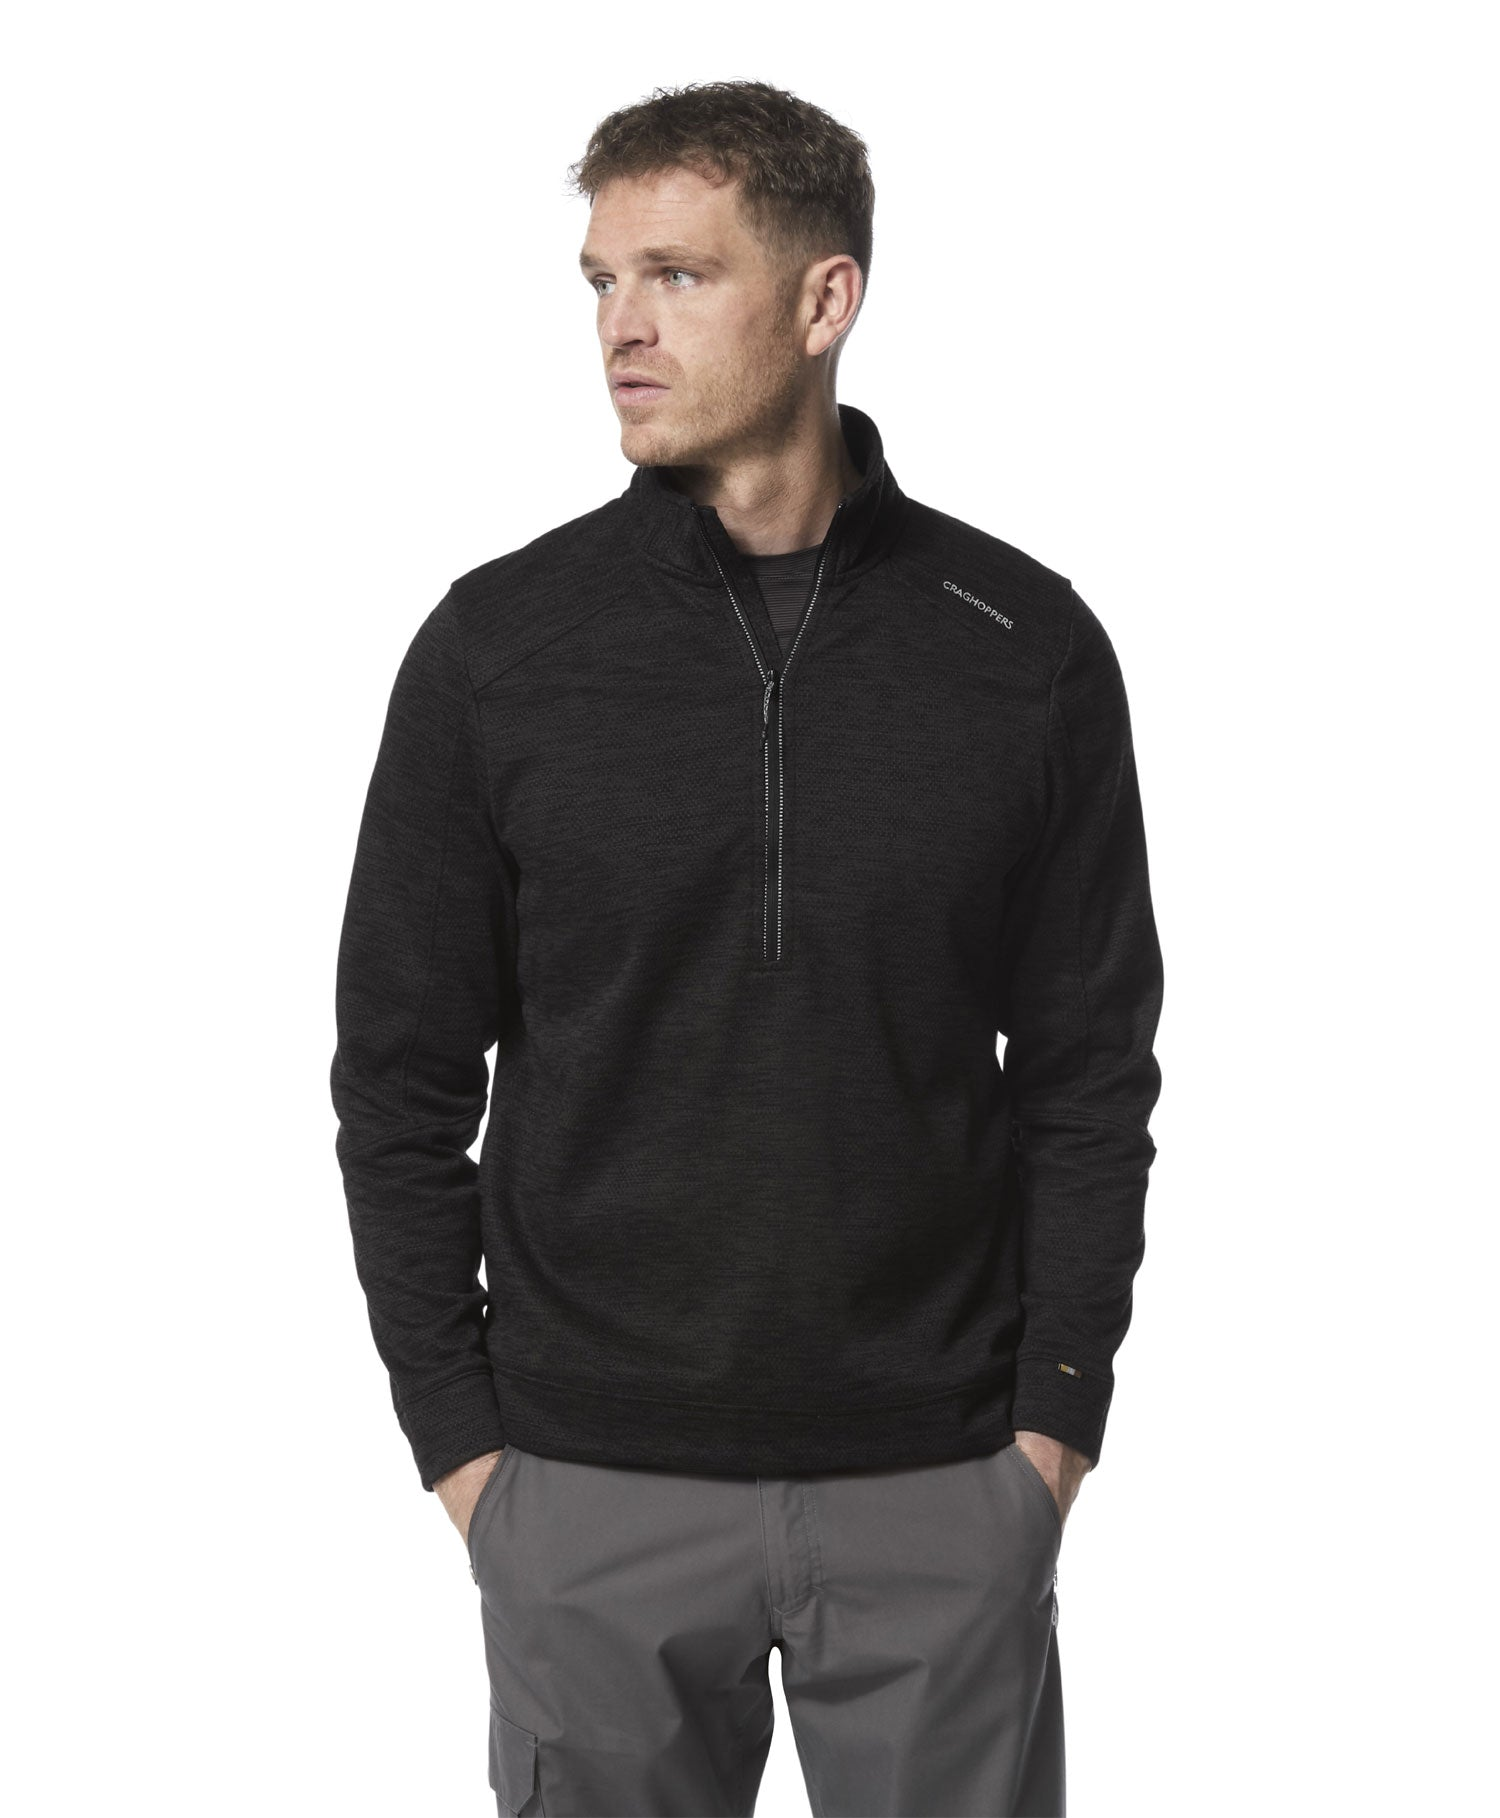 Man wearing Craghoppers Strata Half Zip Fleece